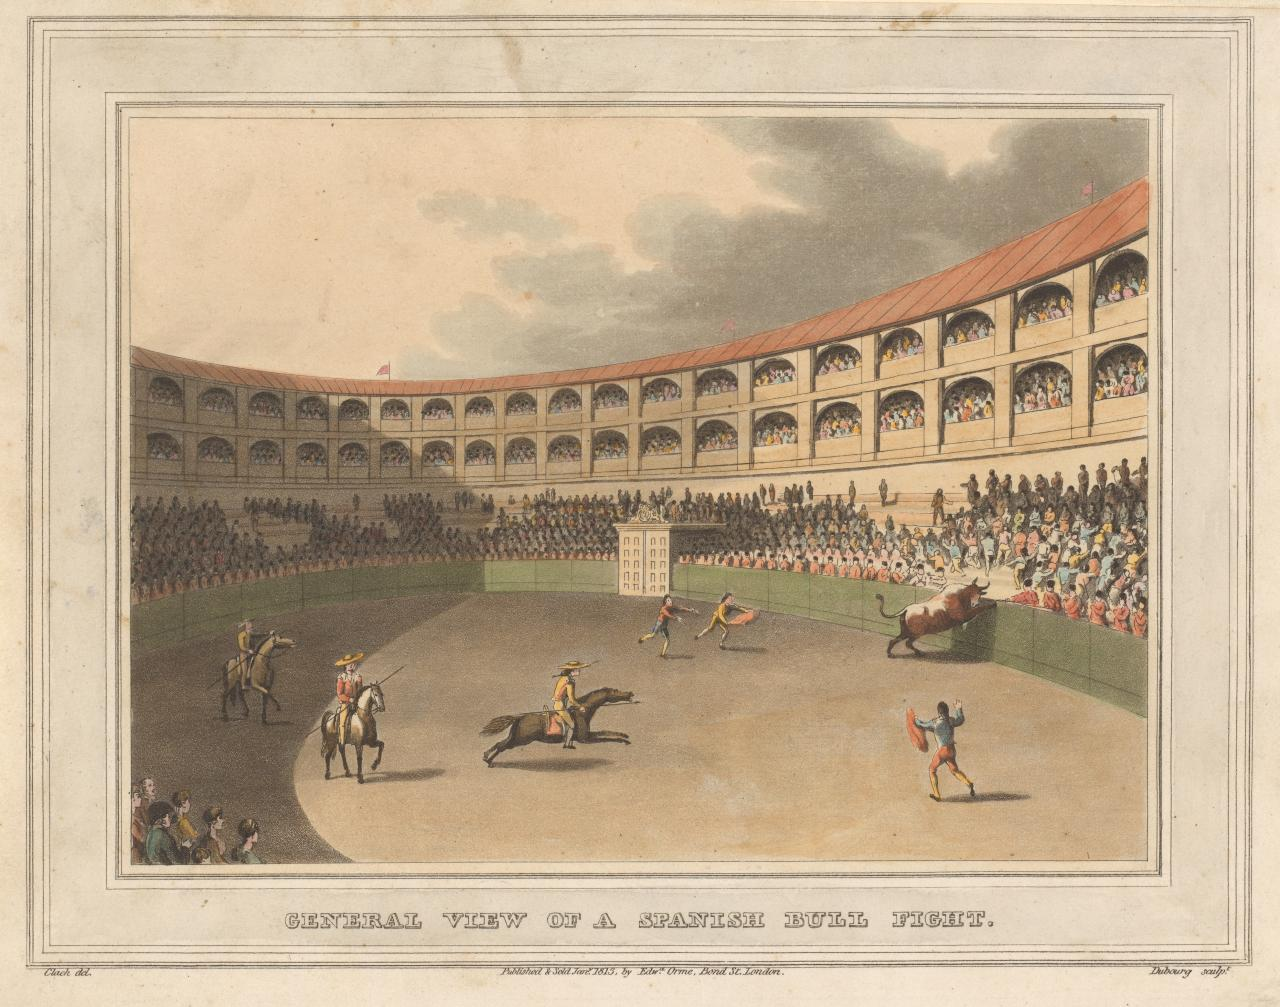 General view of the fight, and the amphitheatre